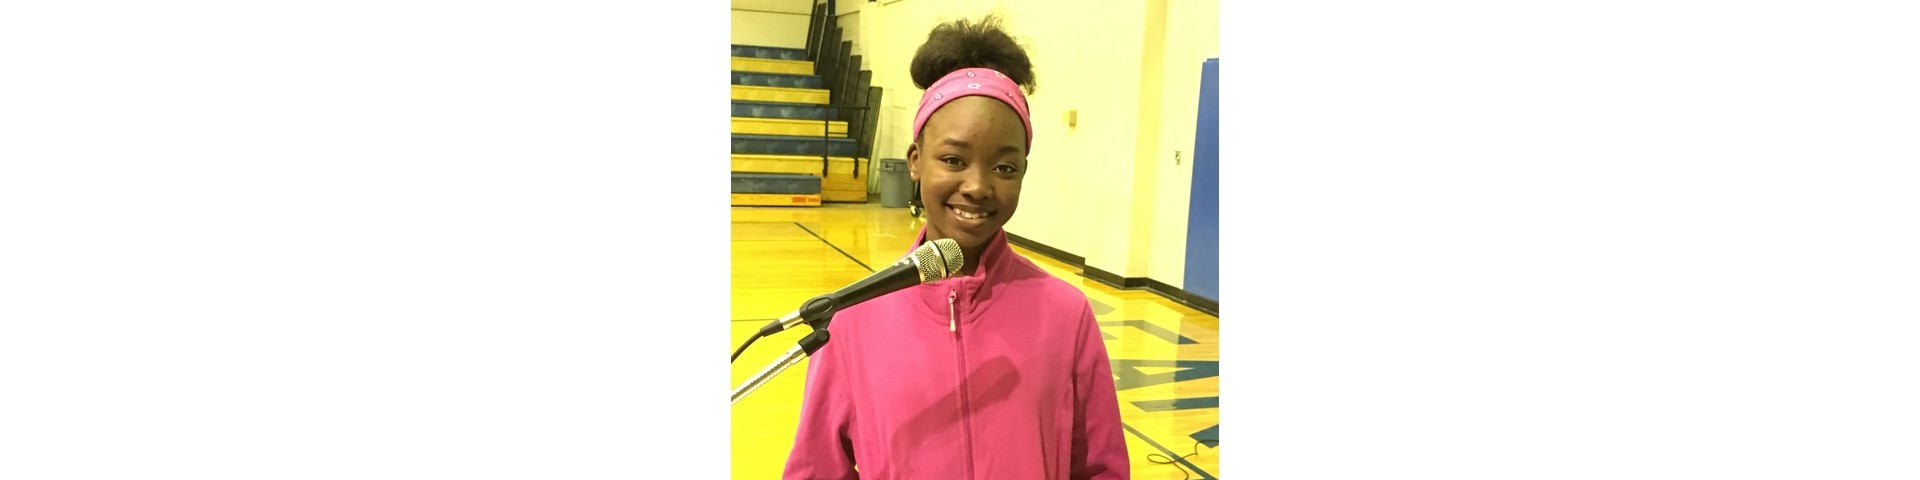 First place Spelling Bee winner, Jakira Moseley, will represent Keith Middle-High at The Countywide Spelling Bee, Friday, 09 February 2018.